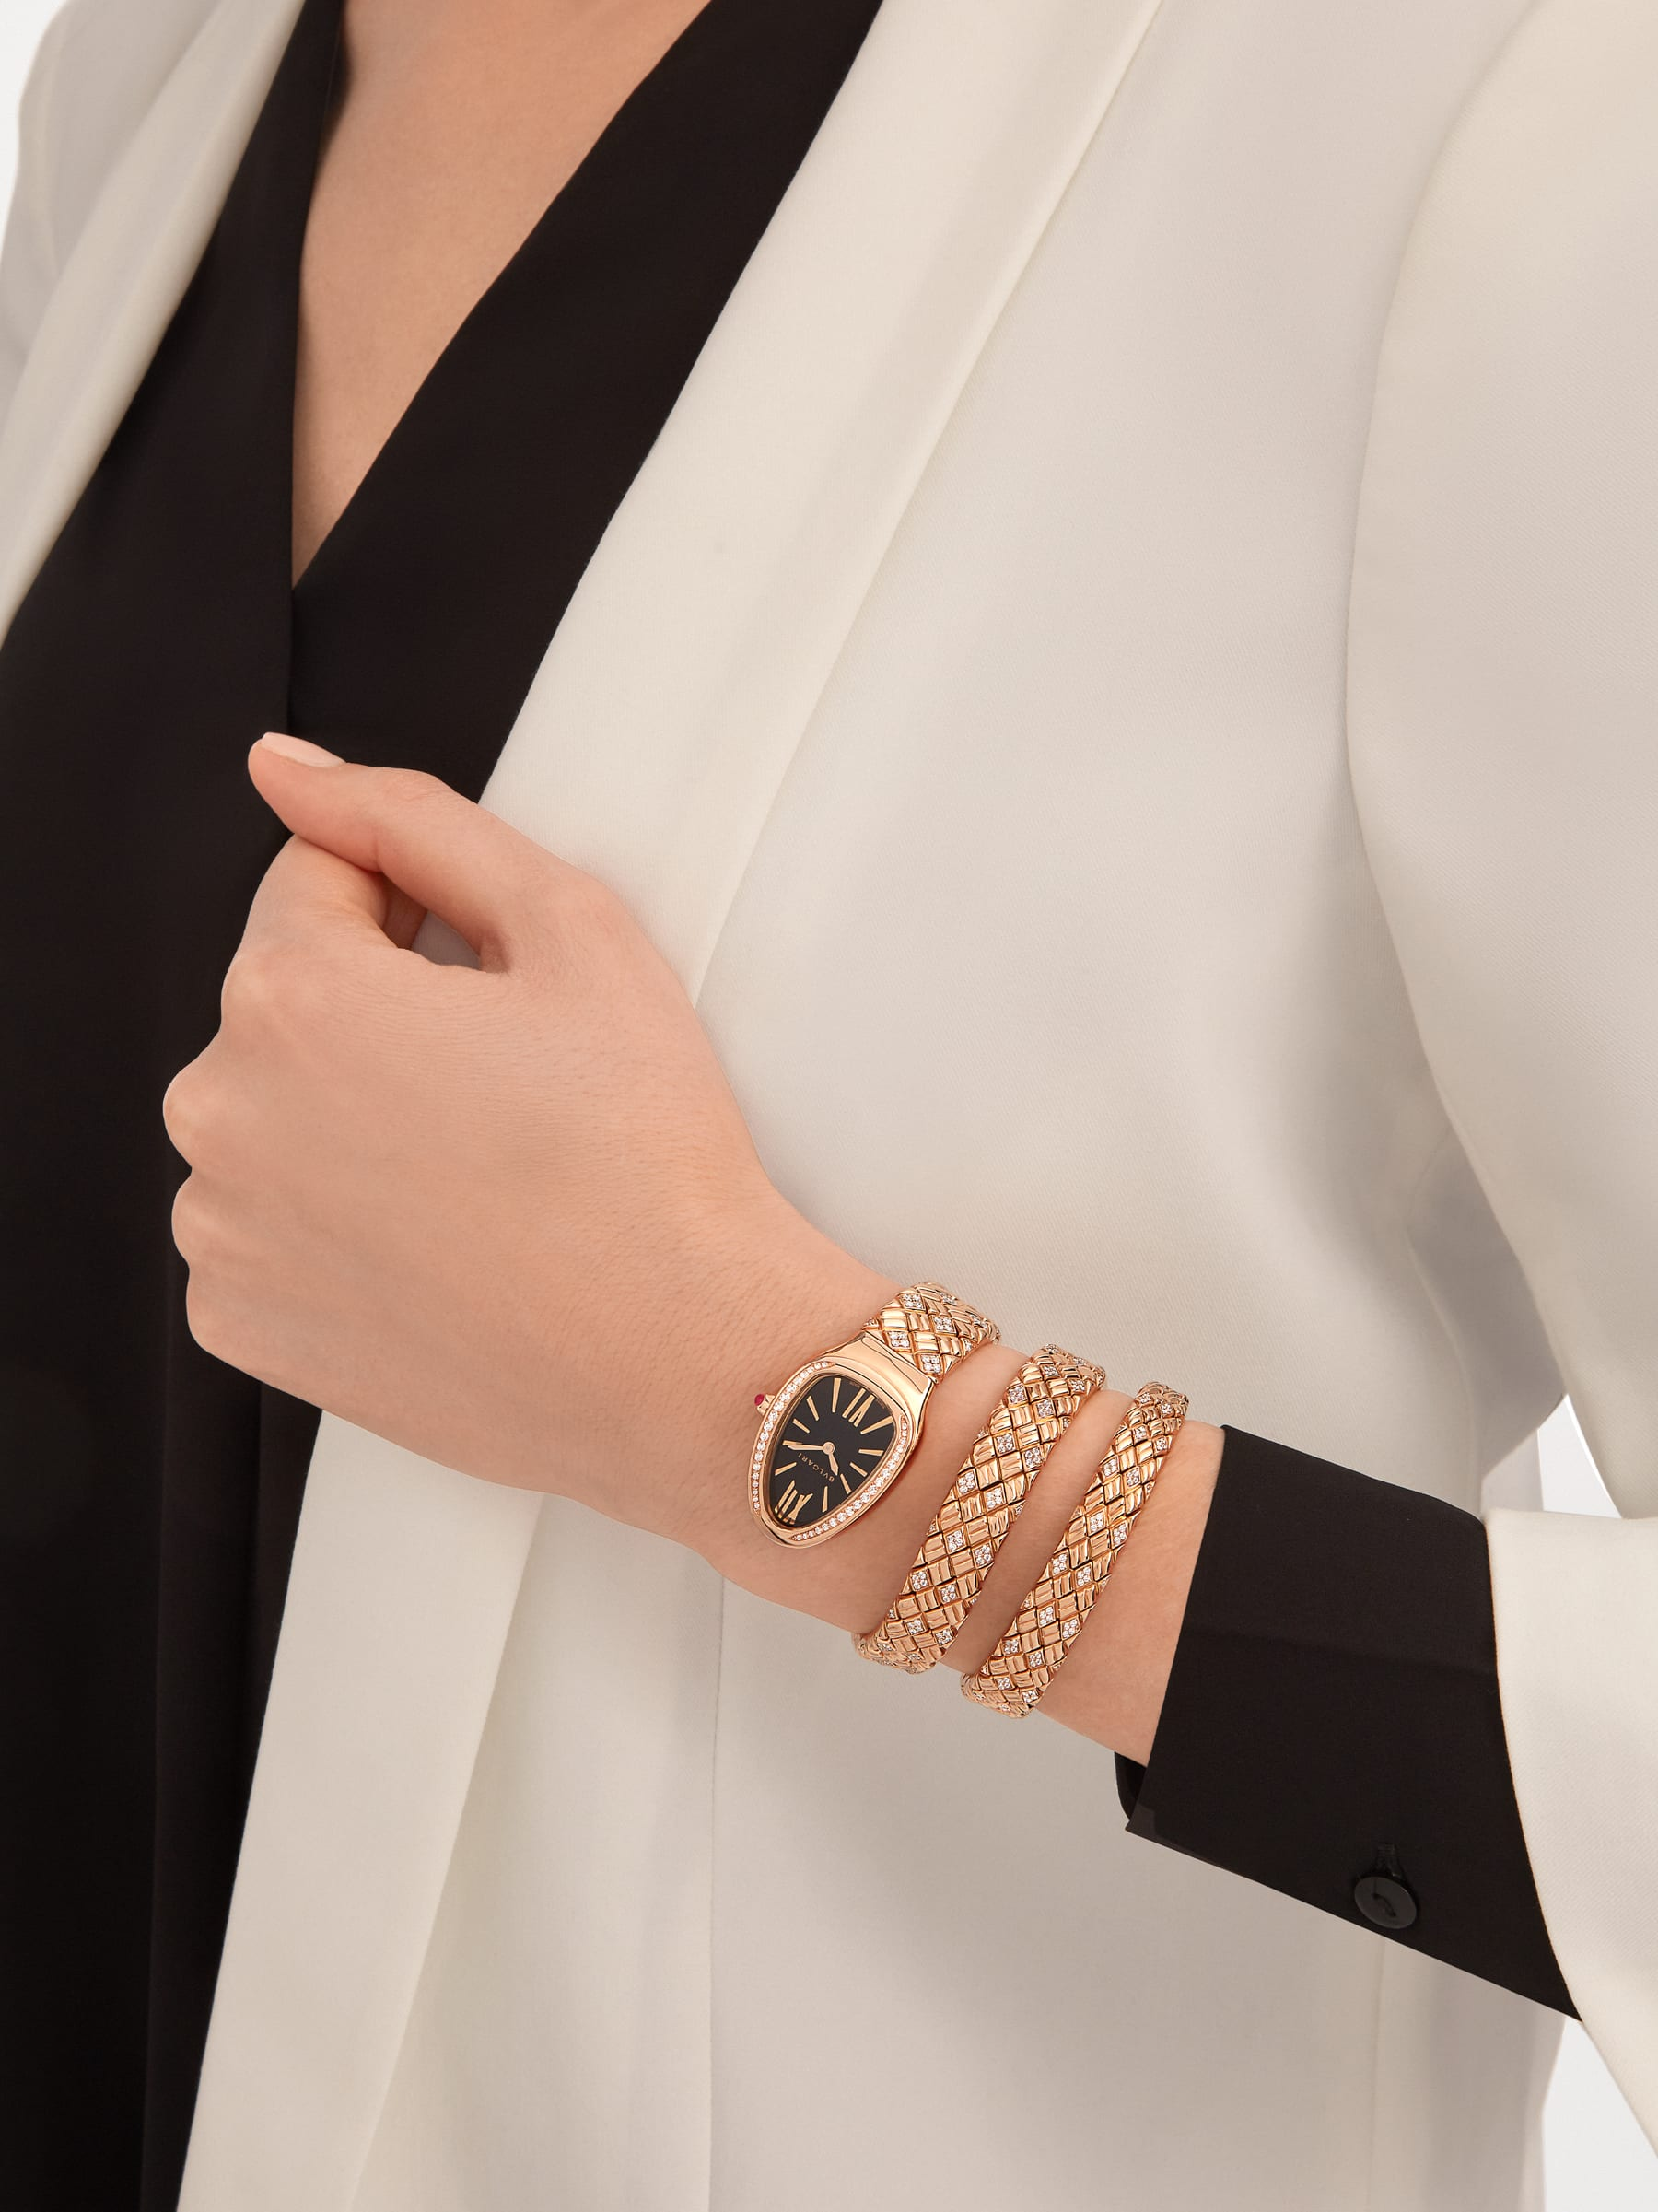 Serpenti Spiga double-spiral watch with 18 kt rose gold case and bracelet set with diamonds, and black dial 103252 image 4